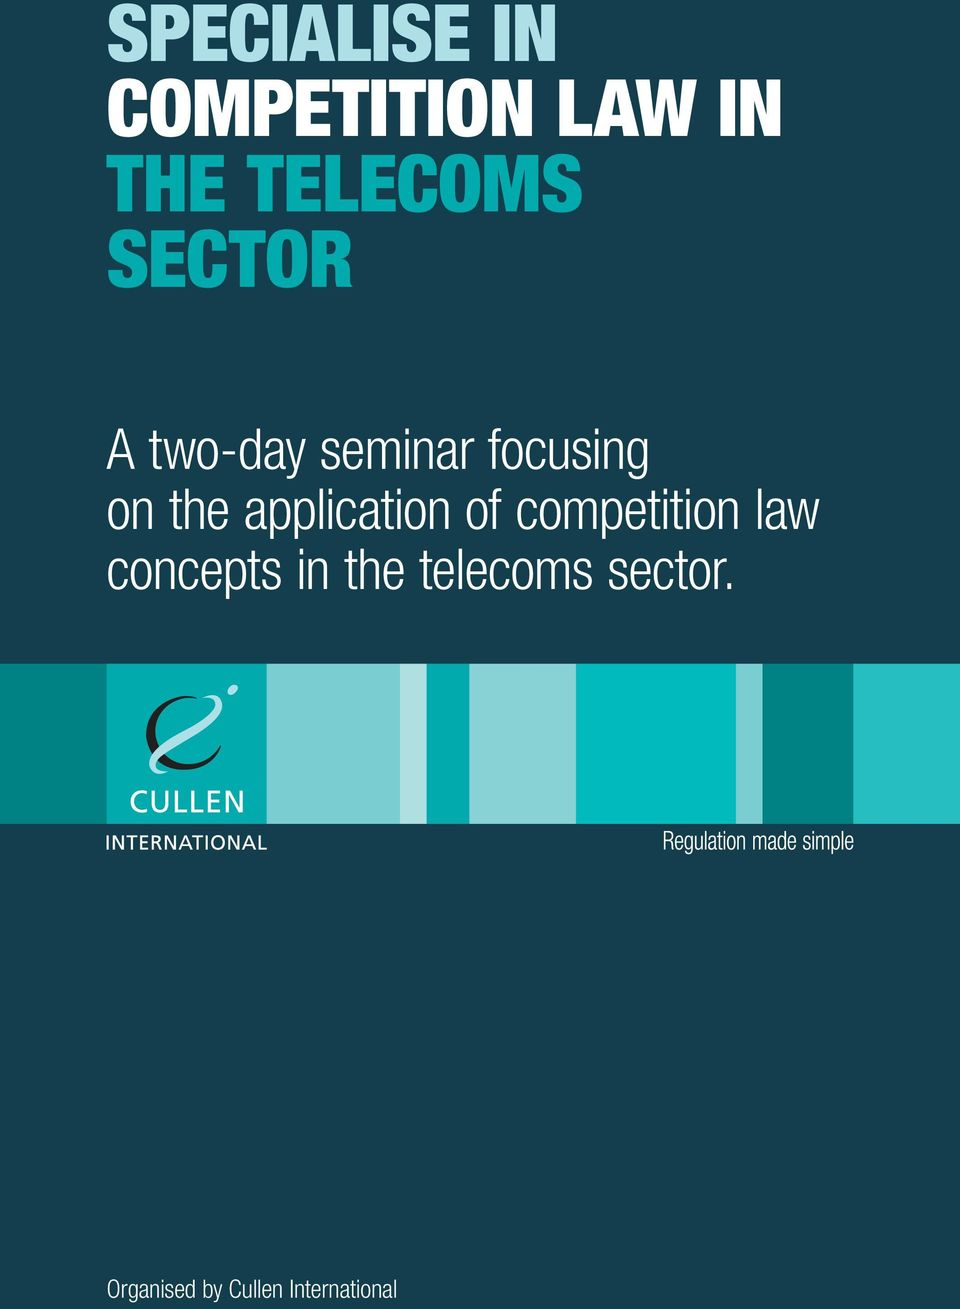 application of competition law concepts in